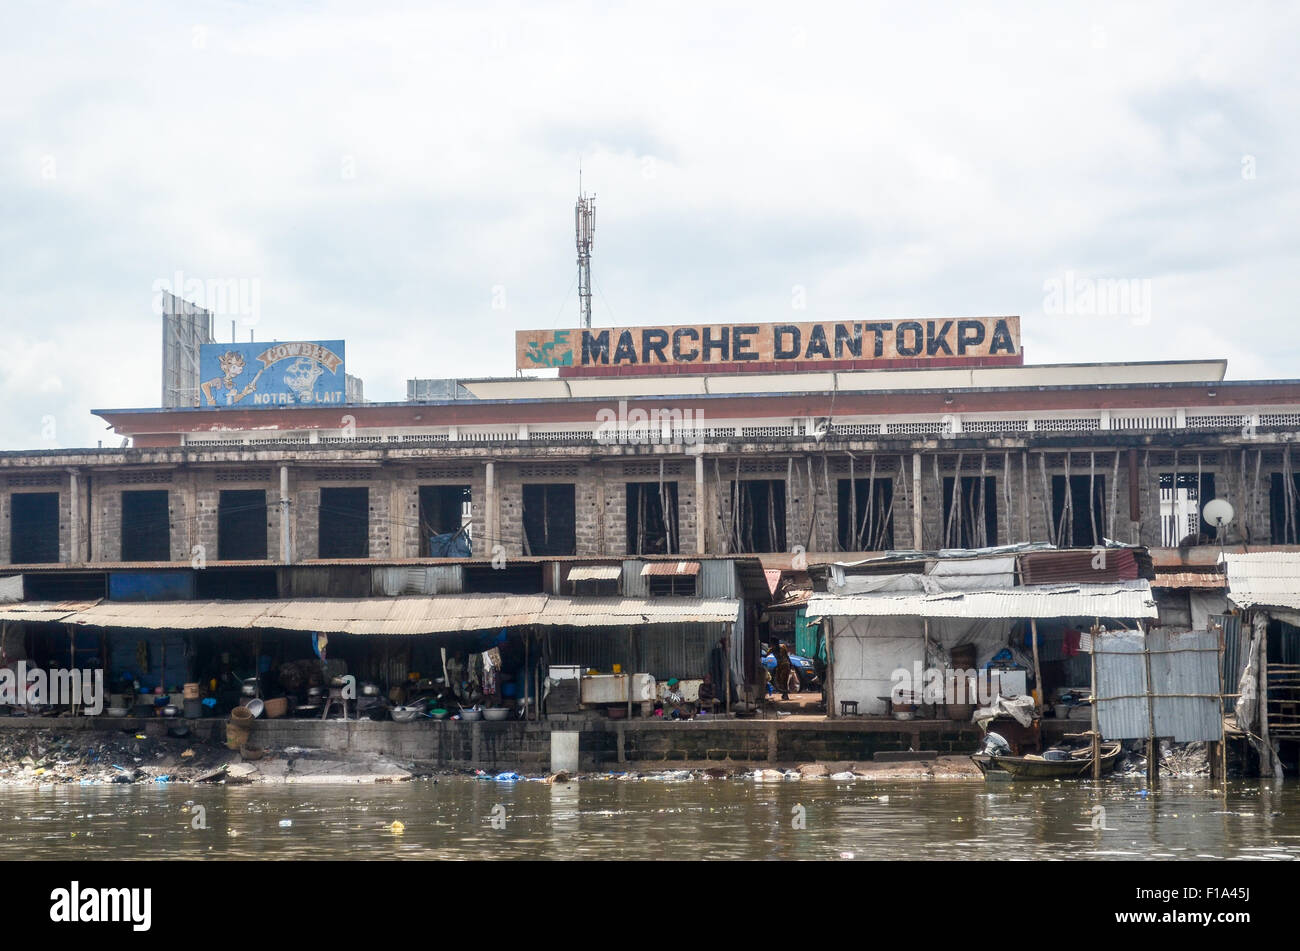 Dirty side of Dantokpa market in Cotonou, Benin, from the Ouémé river - Stock Image